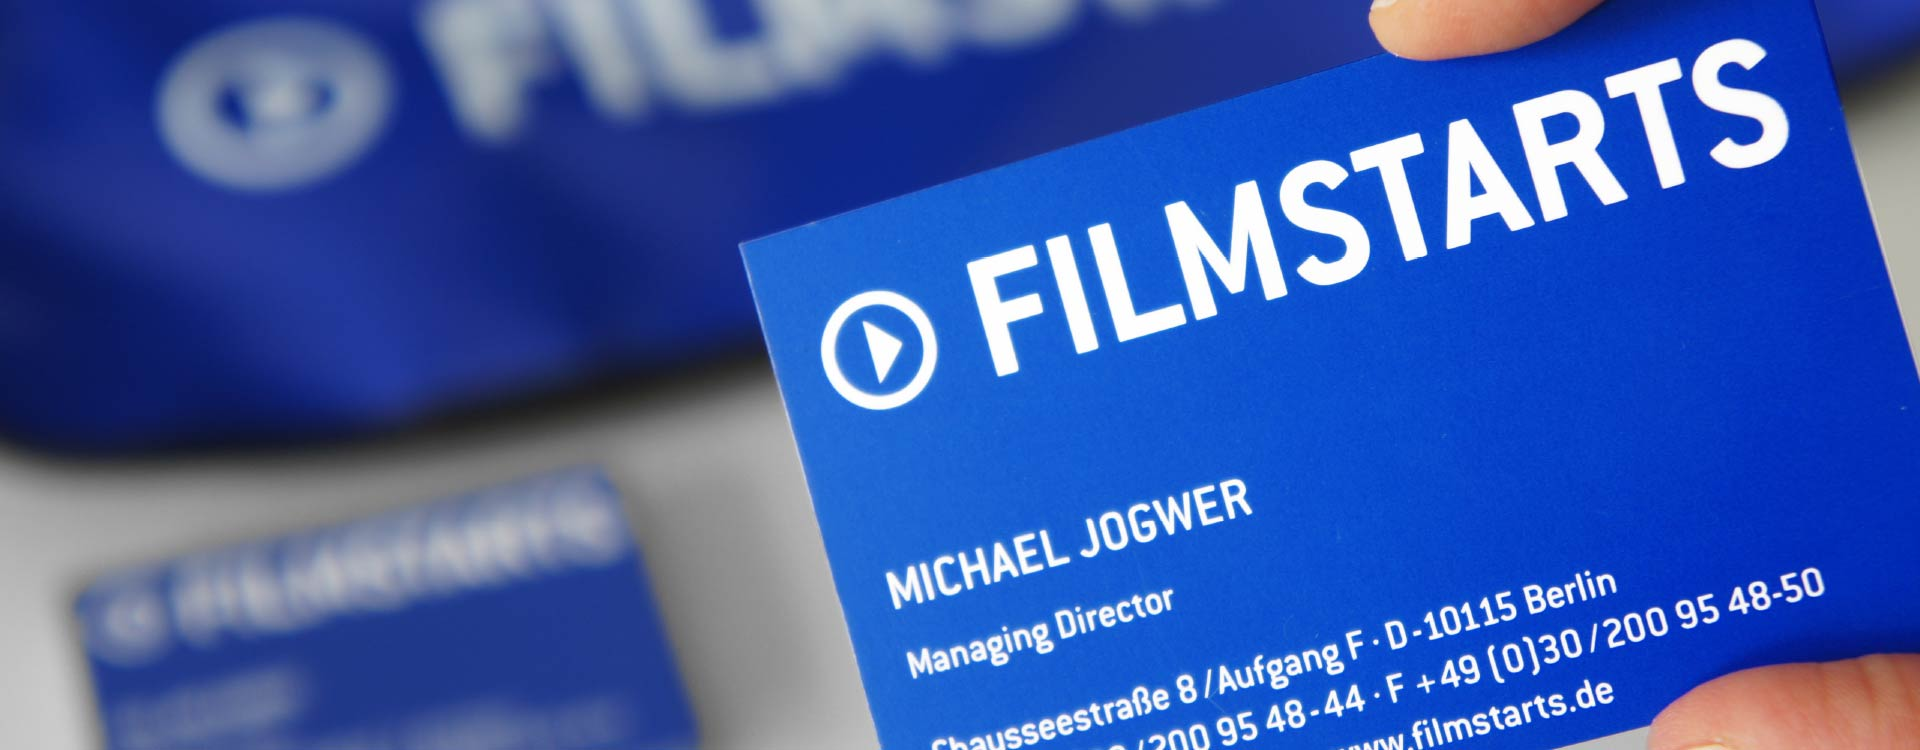 Business card for Filmstarts